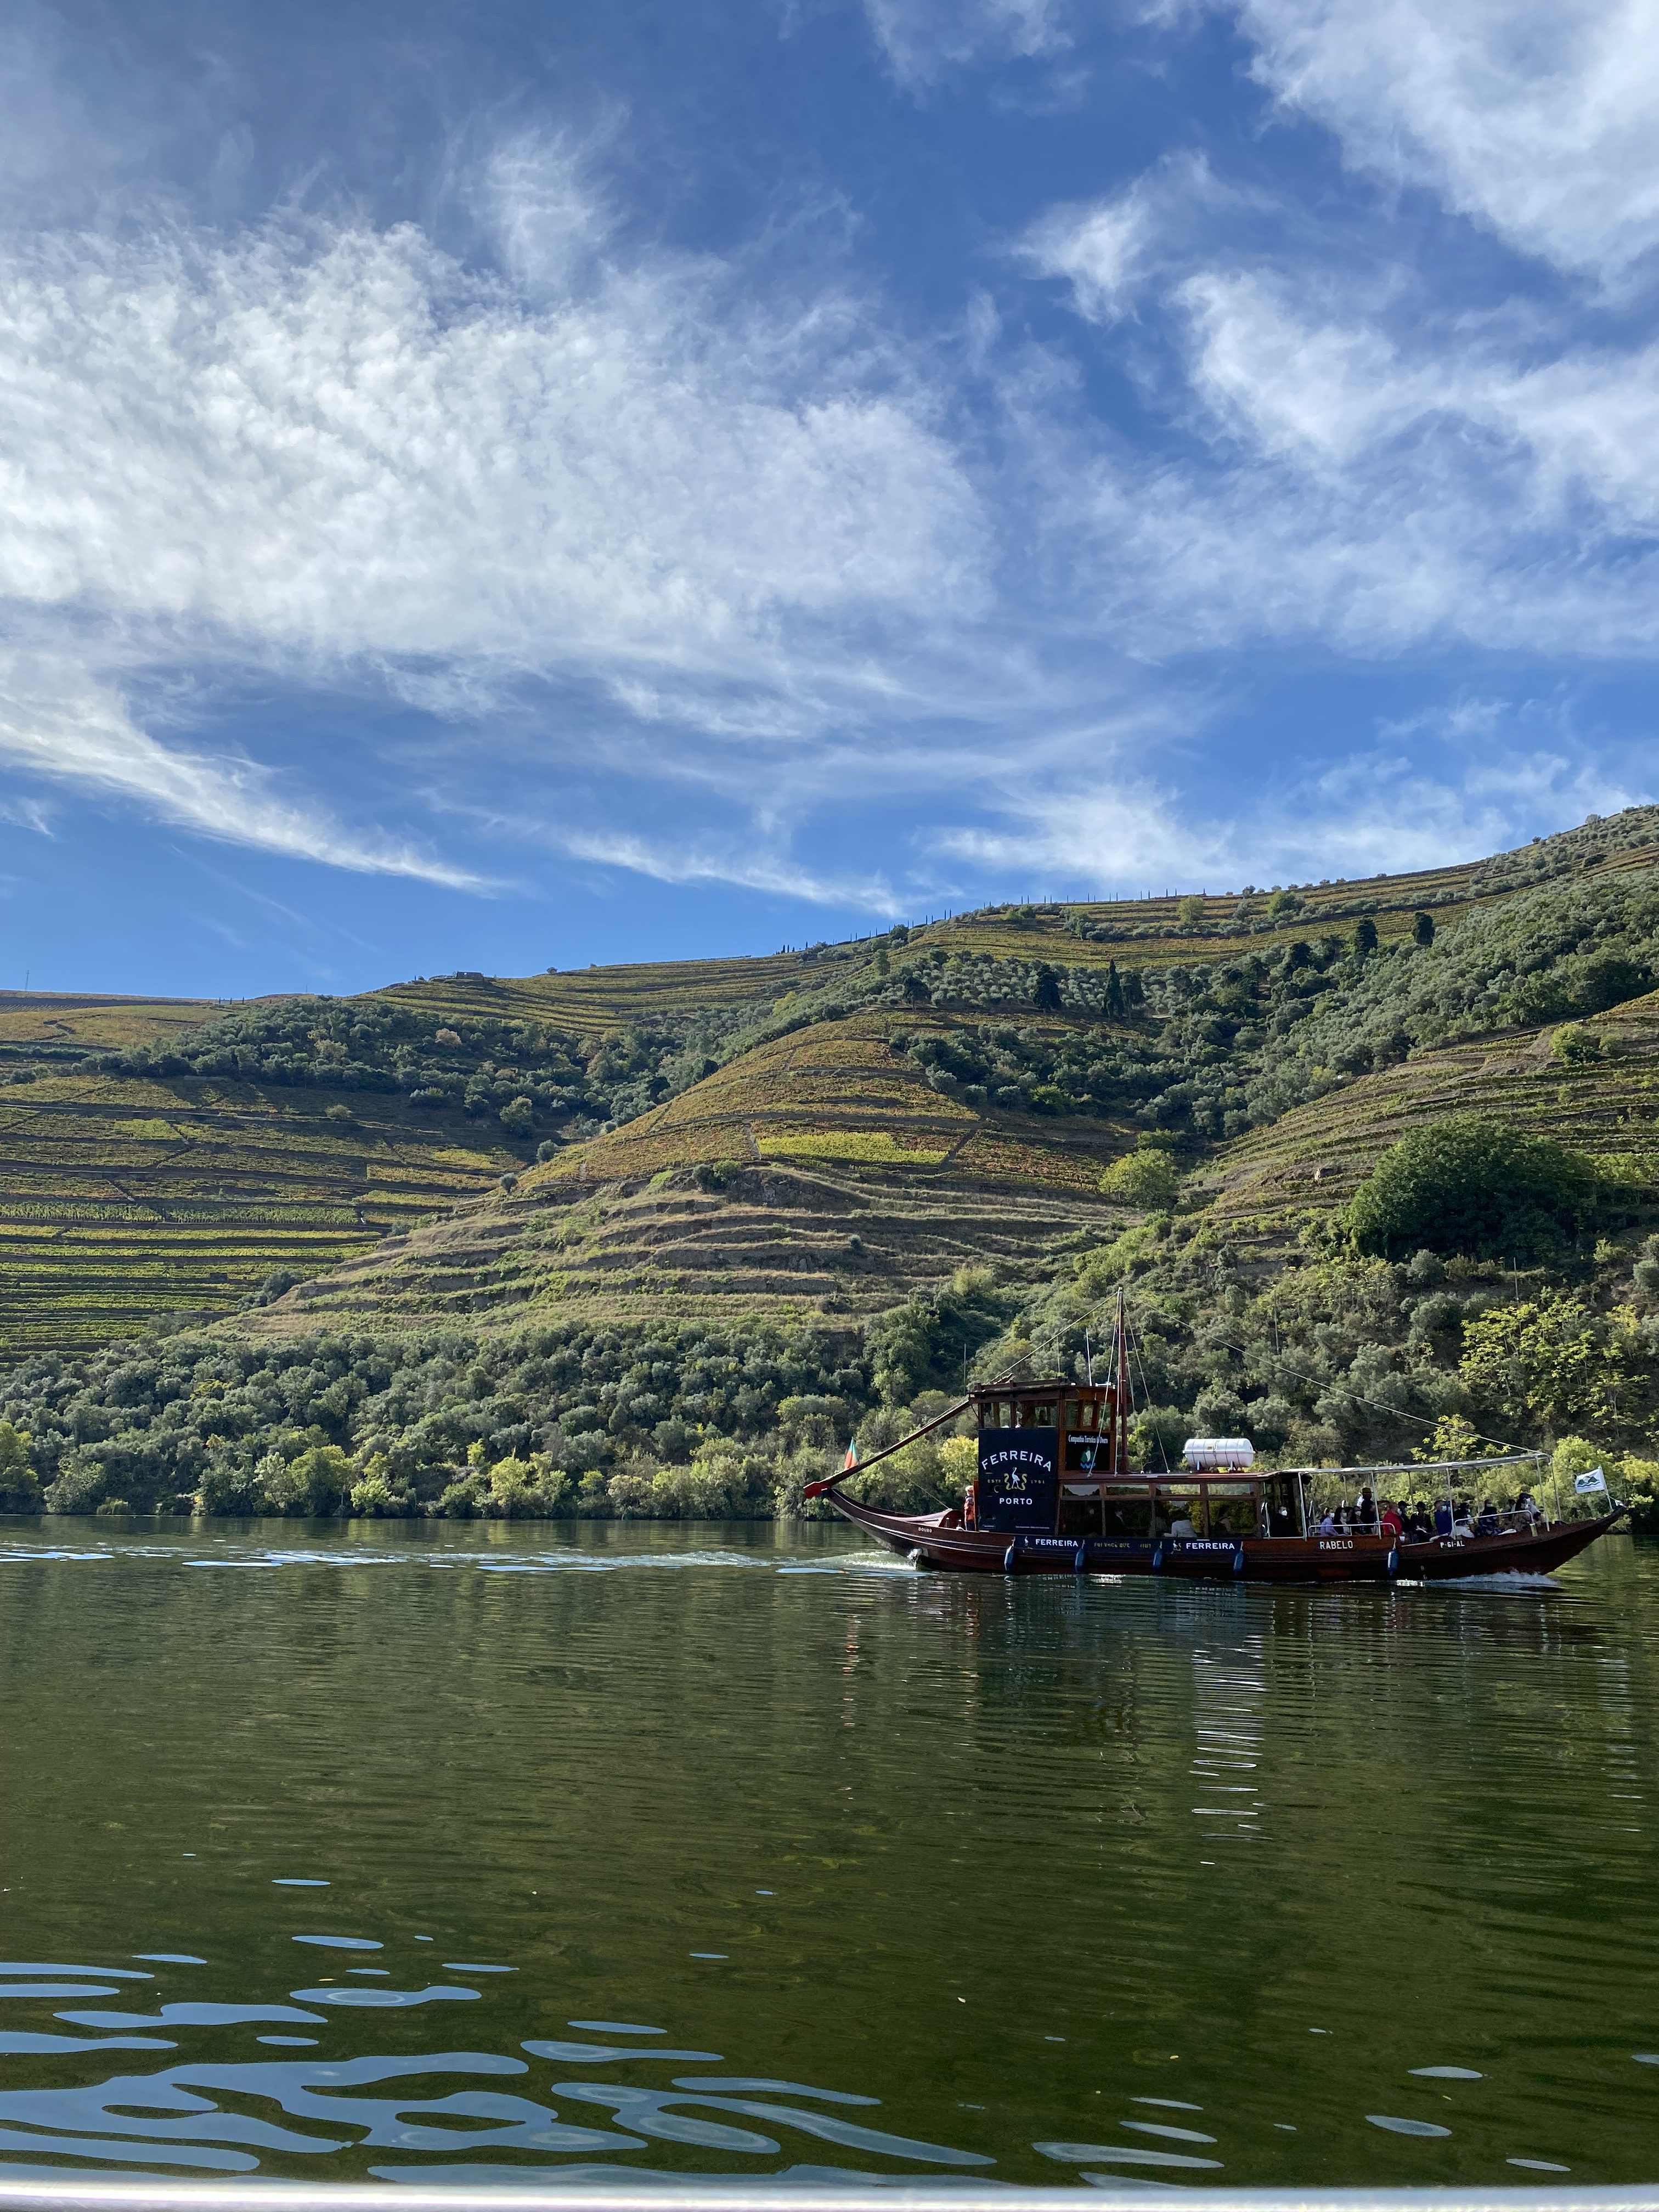 Rabelo boat on the Douro River near Pinhao